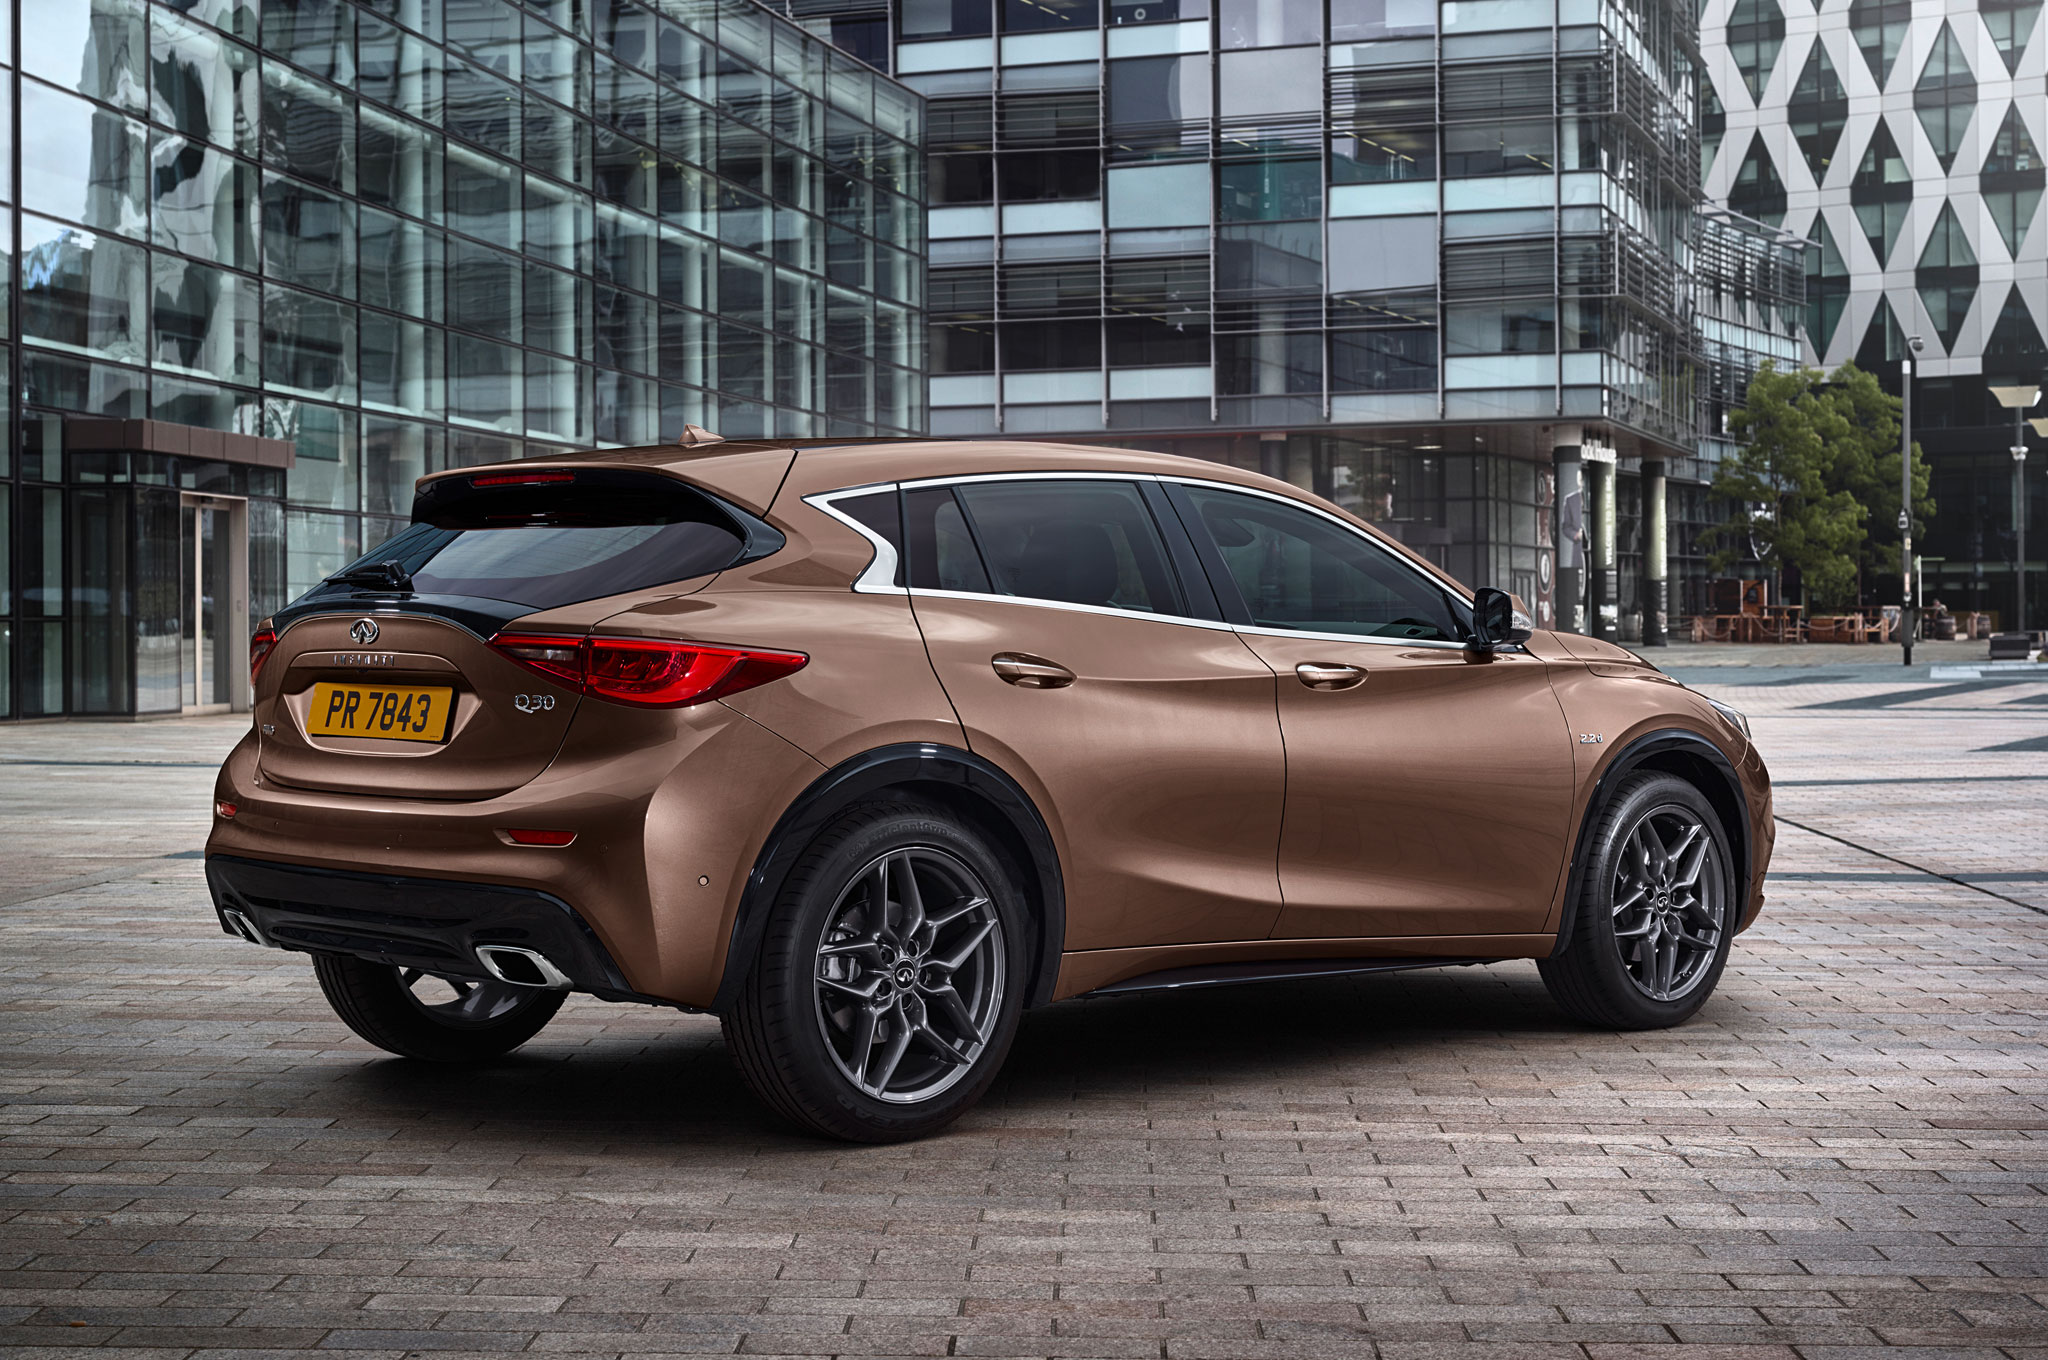 2017 infiniti q30 is the luxury brand 39 s first compact hatchback. Black Bedroom Furniture Sets. Home Design Ideas